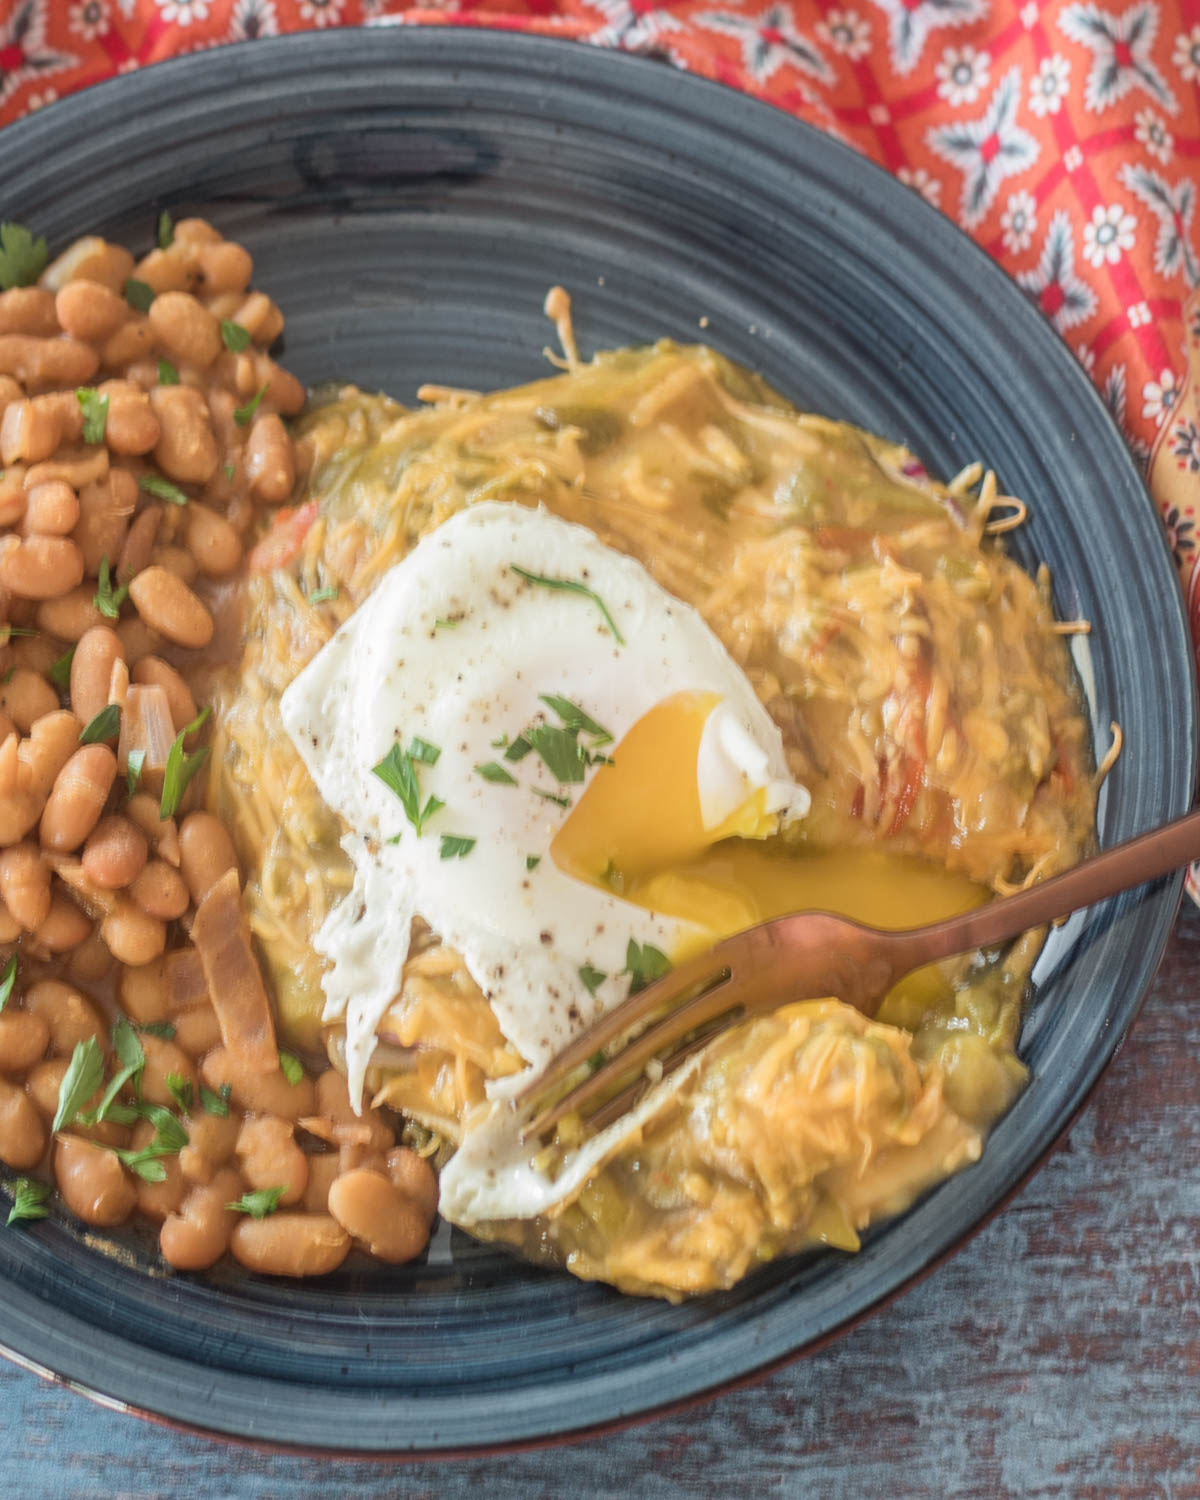 A blue ceramic plate with New Mexico green chile enchiladas with a broken yoke runny egg and beans.